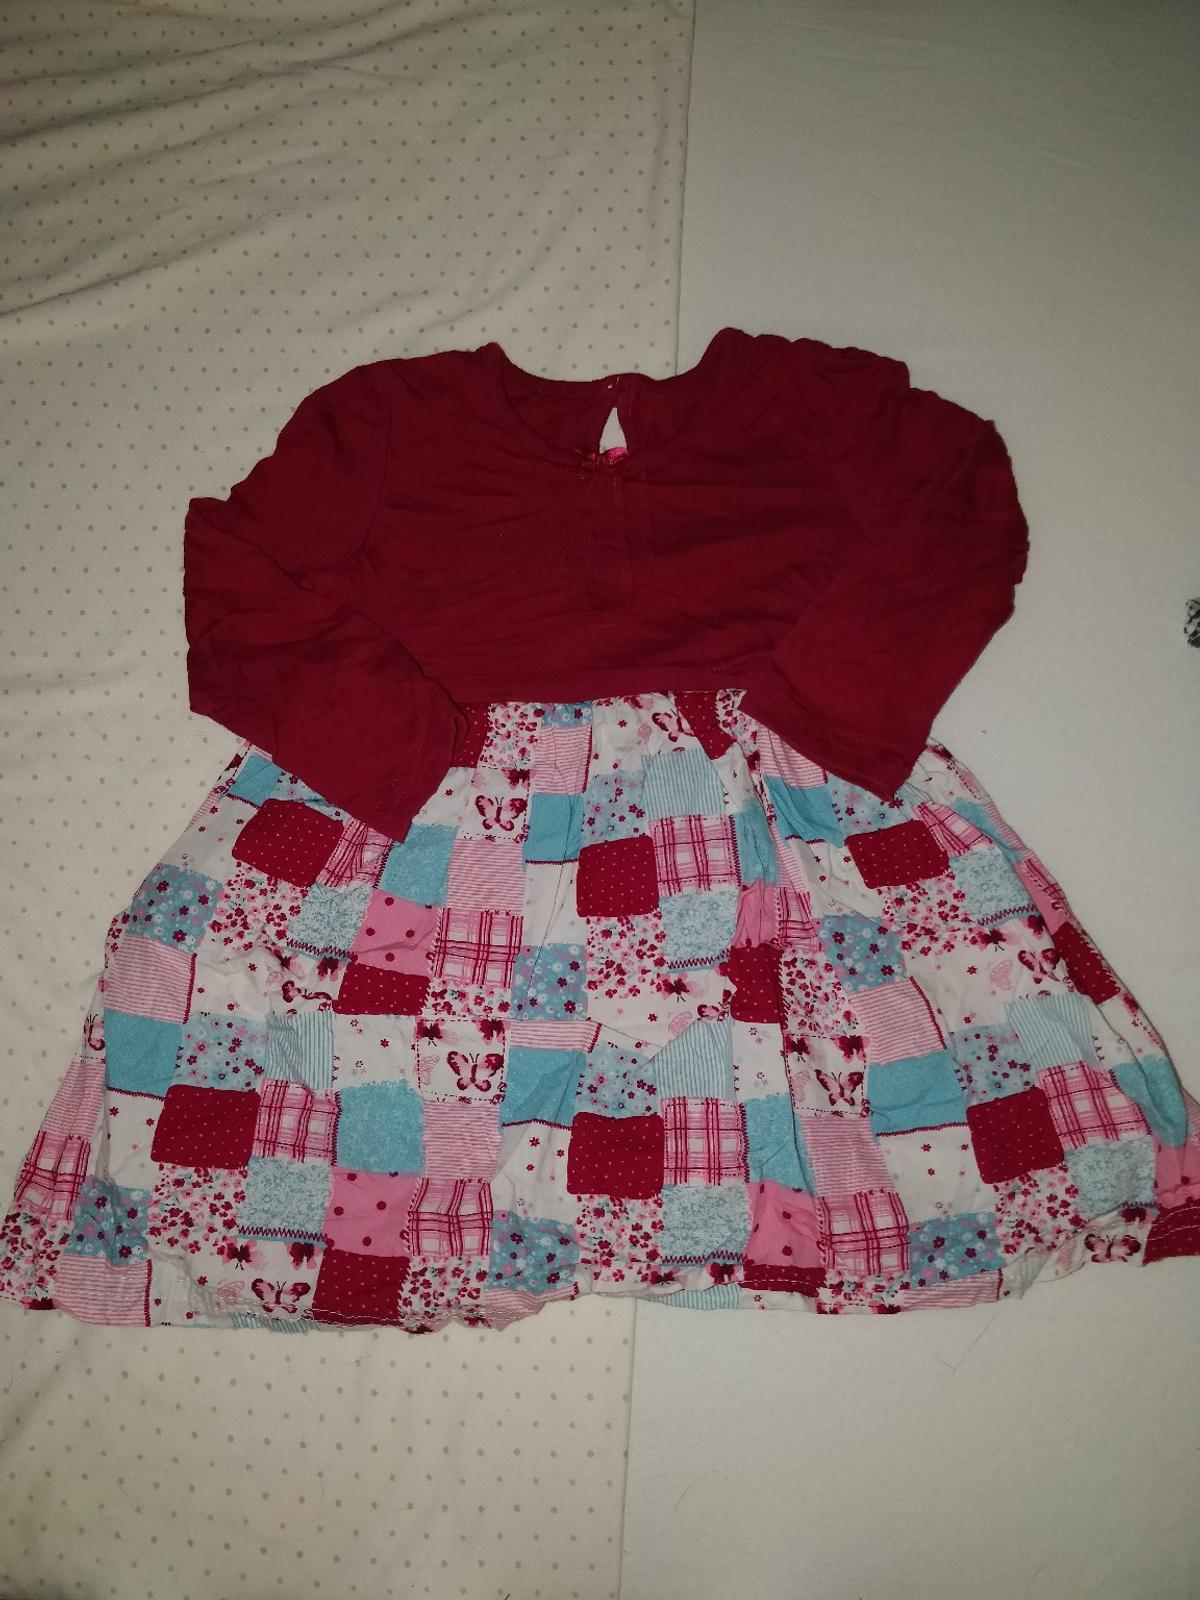 Red/pink crochet style dress from George in size 9-12m Good condition, no rips/stains. From a smoke free home.